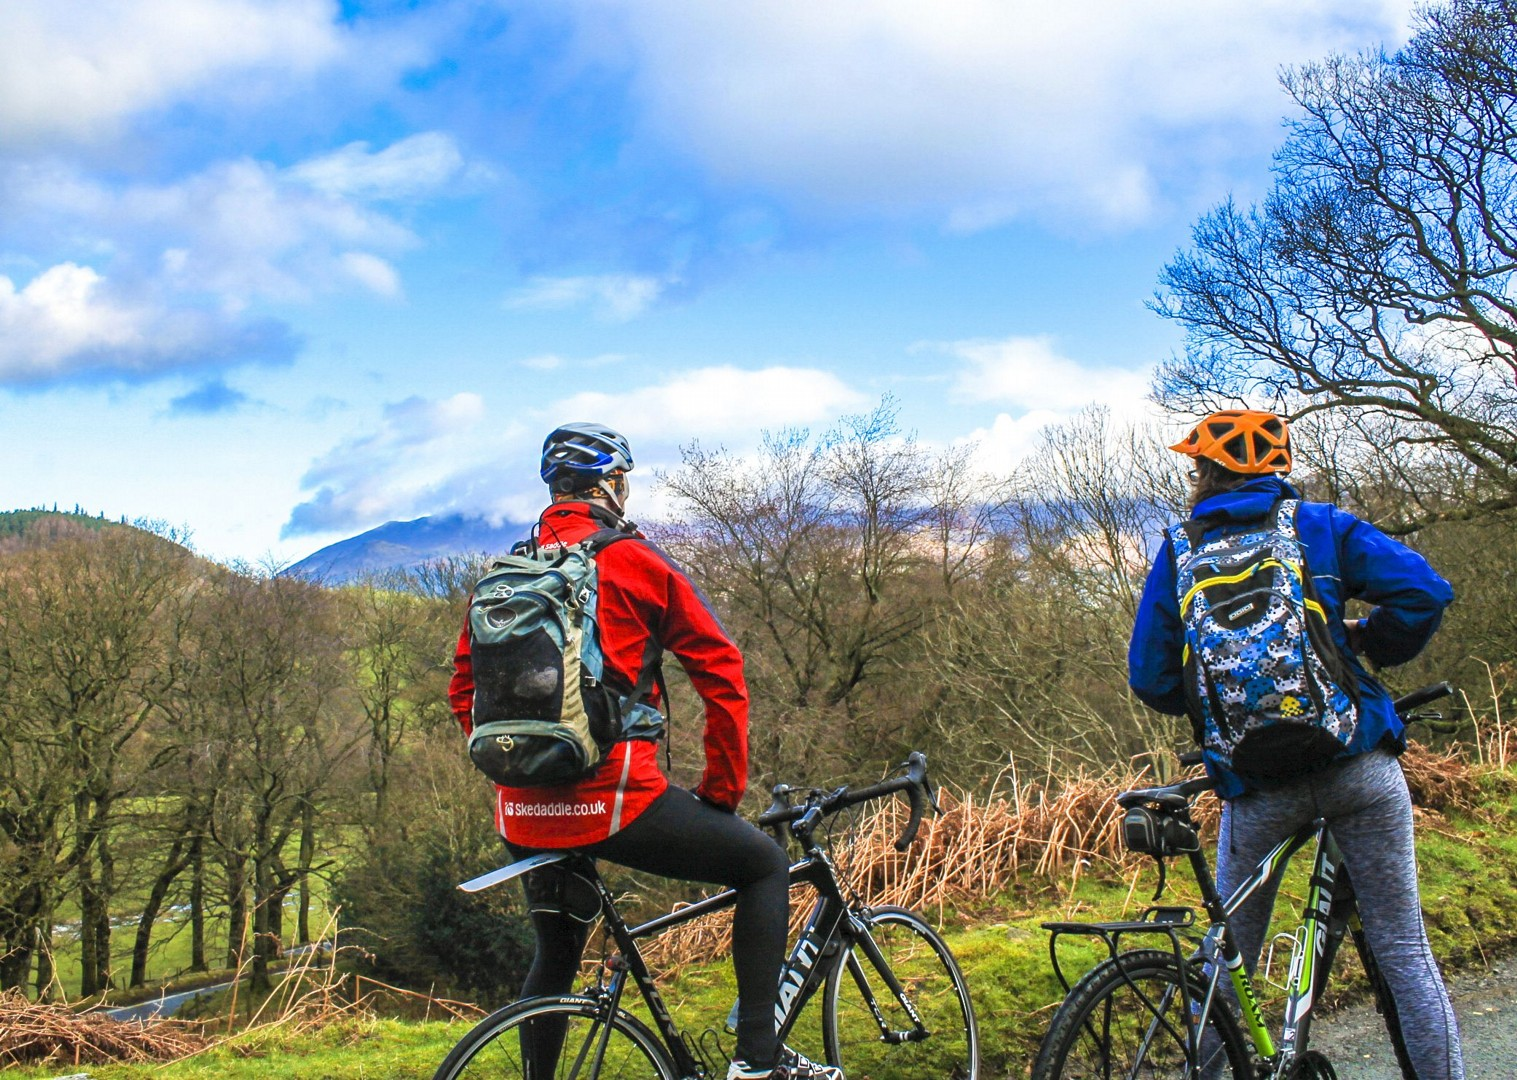 saddle-skedaddle-derwent-water-countryside-forest-lakes-mountains-bike.jpg - UK - Lake District - Derwent Water - Self-Guided Leisure Cycling Holiday - Leisure Cycling